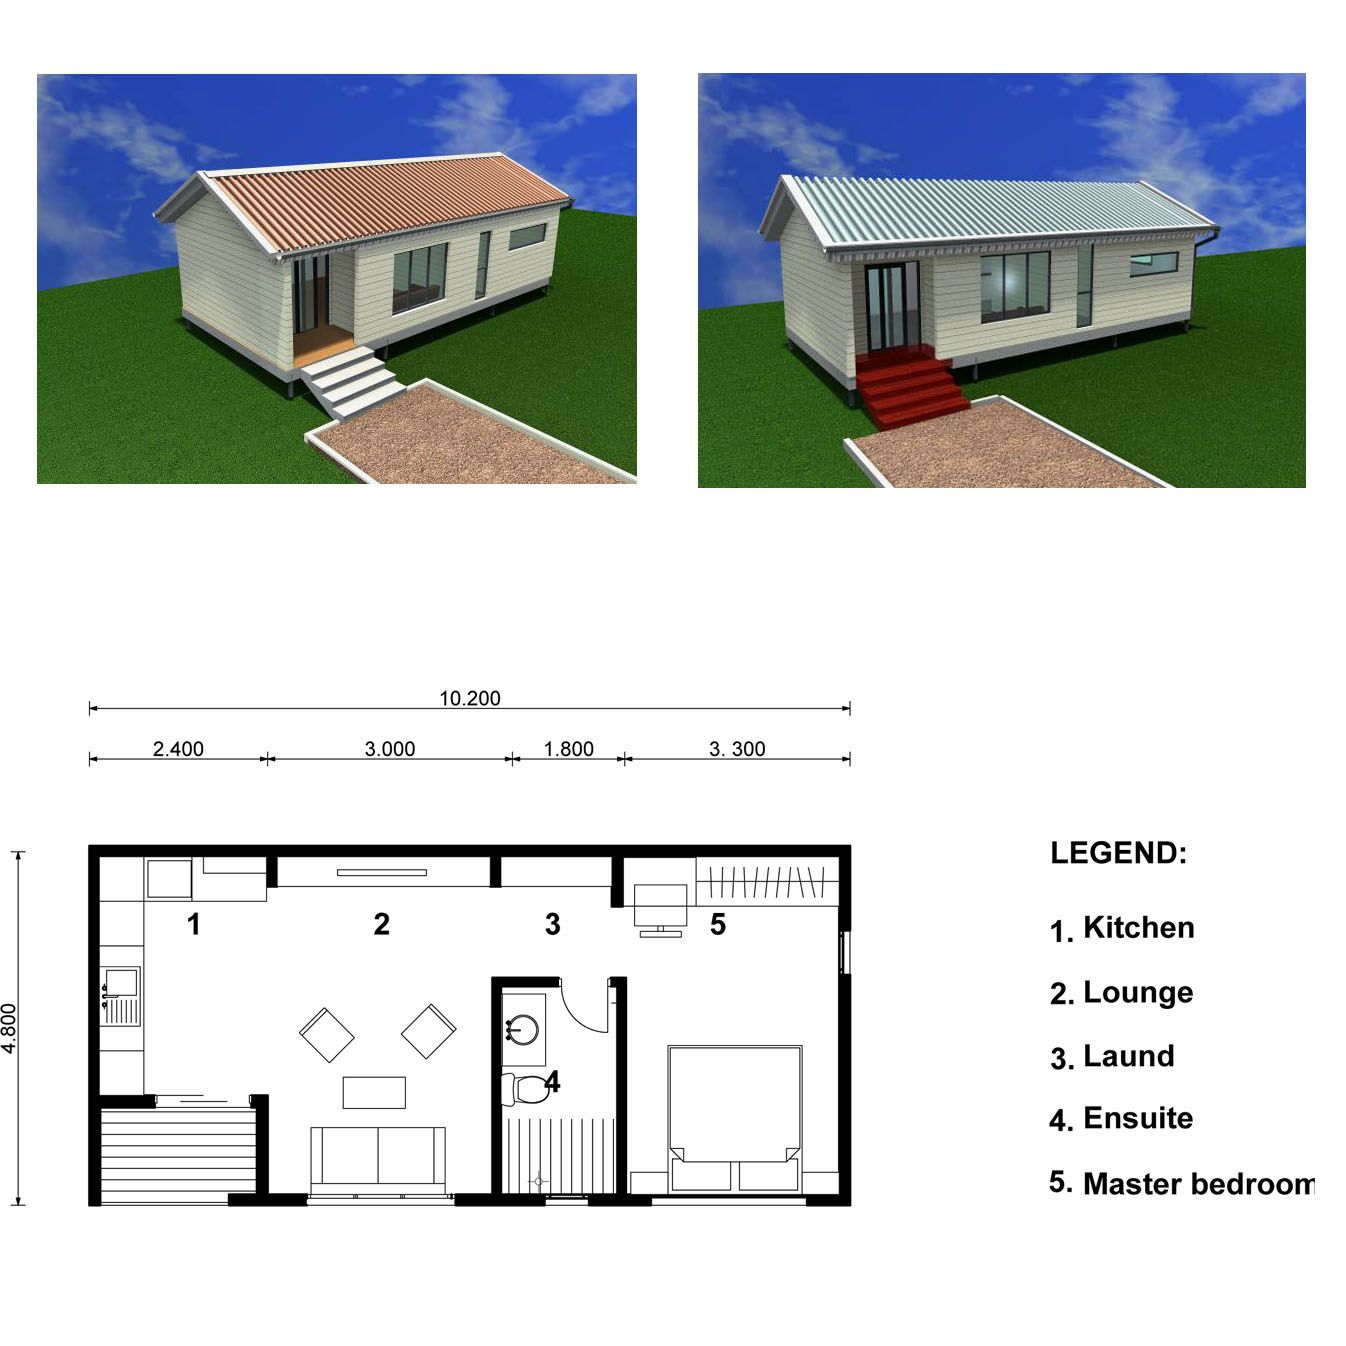 Small Eco House Plans Australian Summer Nature Housesmarta Kablar 71437 Jpg 1346 1346 House Plans Australia Small House Design Plans Small House Plans